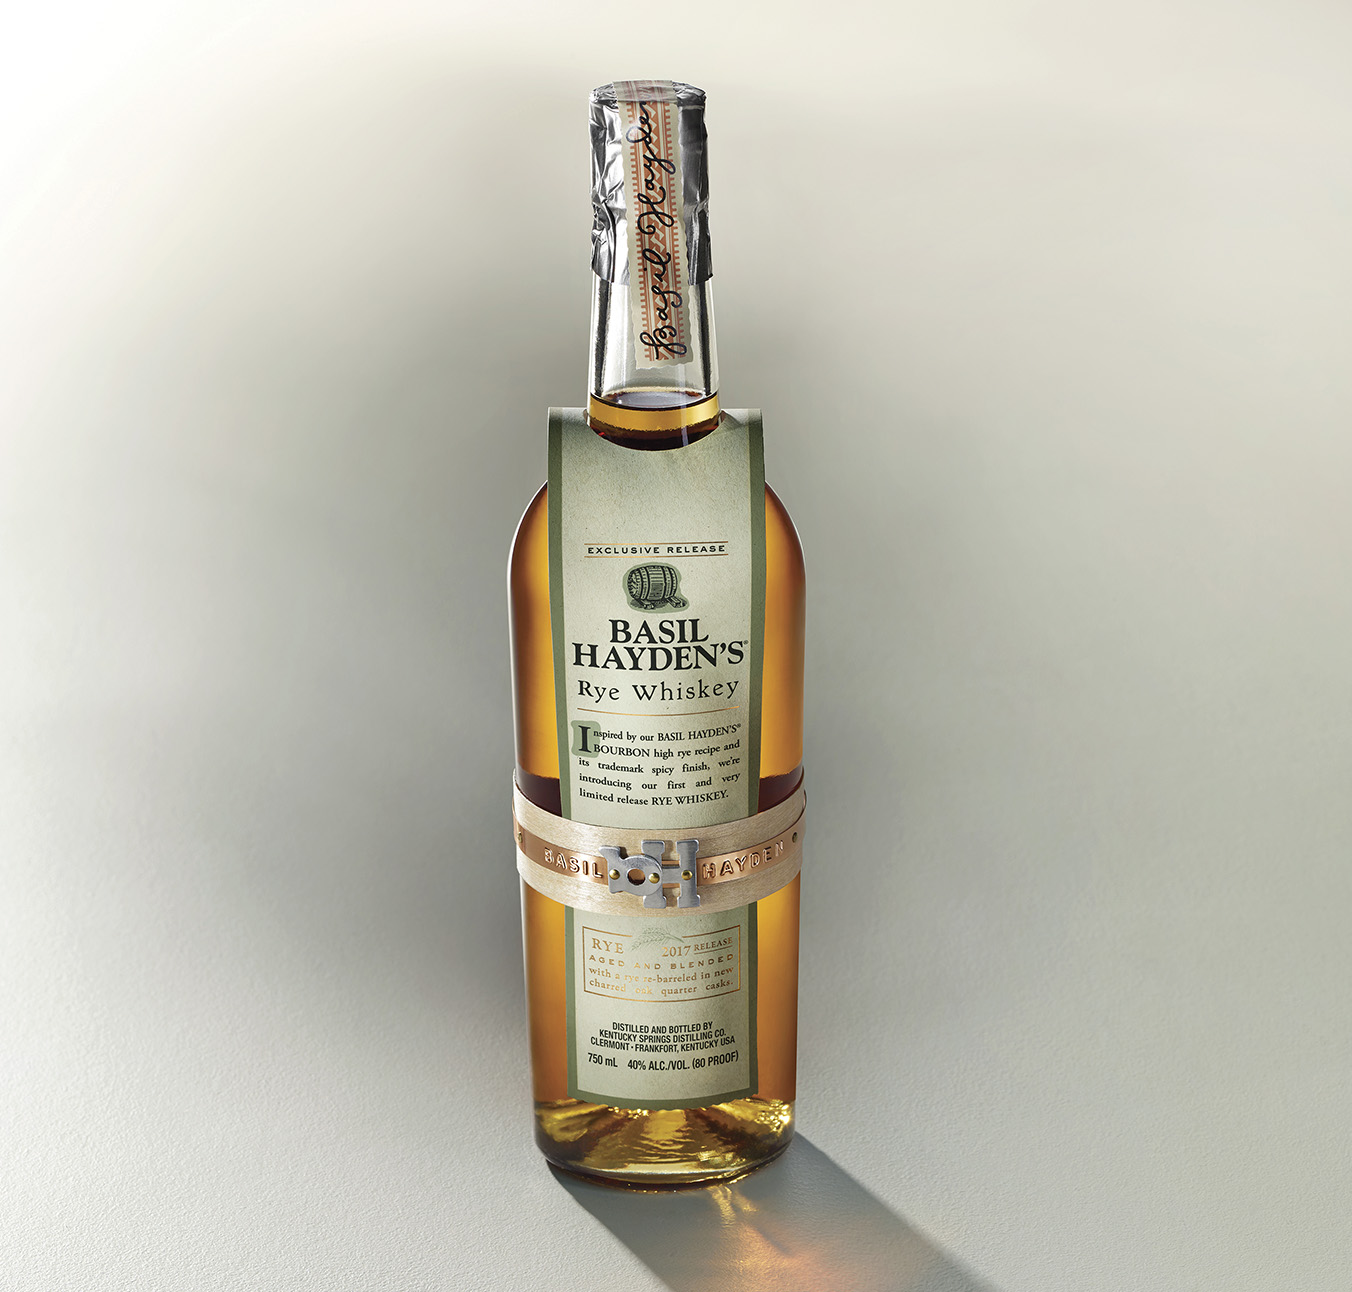 """<h2 class=""""ani-fade-in"""">Have You Tried Our New<br class=""""hidden-xs hidden-sm hide-laptop"""" /> Basil Hayden's Rye?</h2>"""